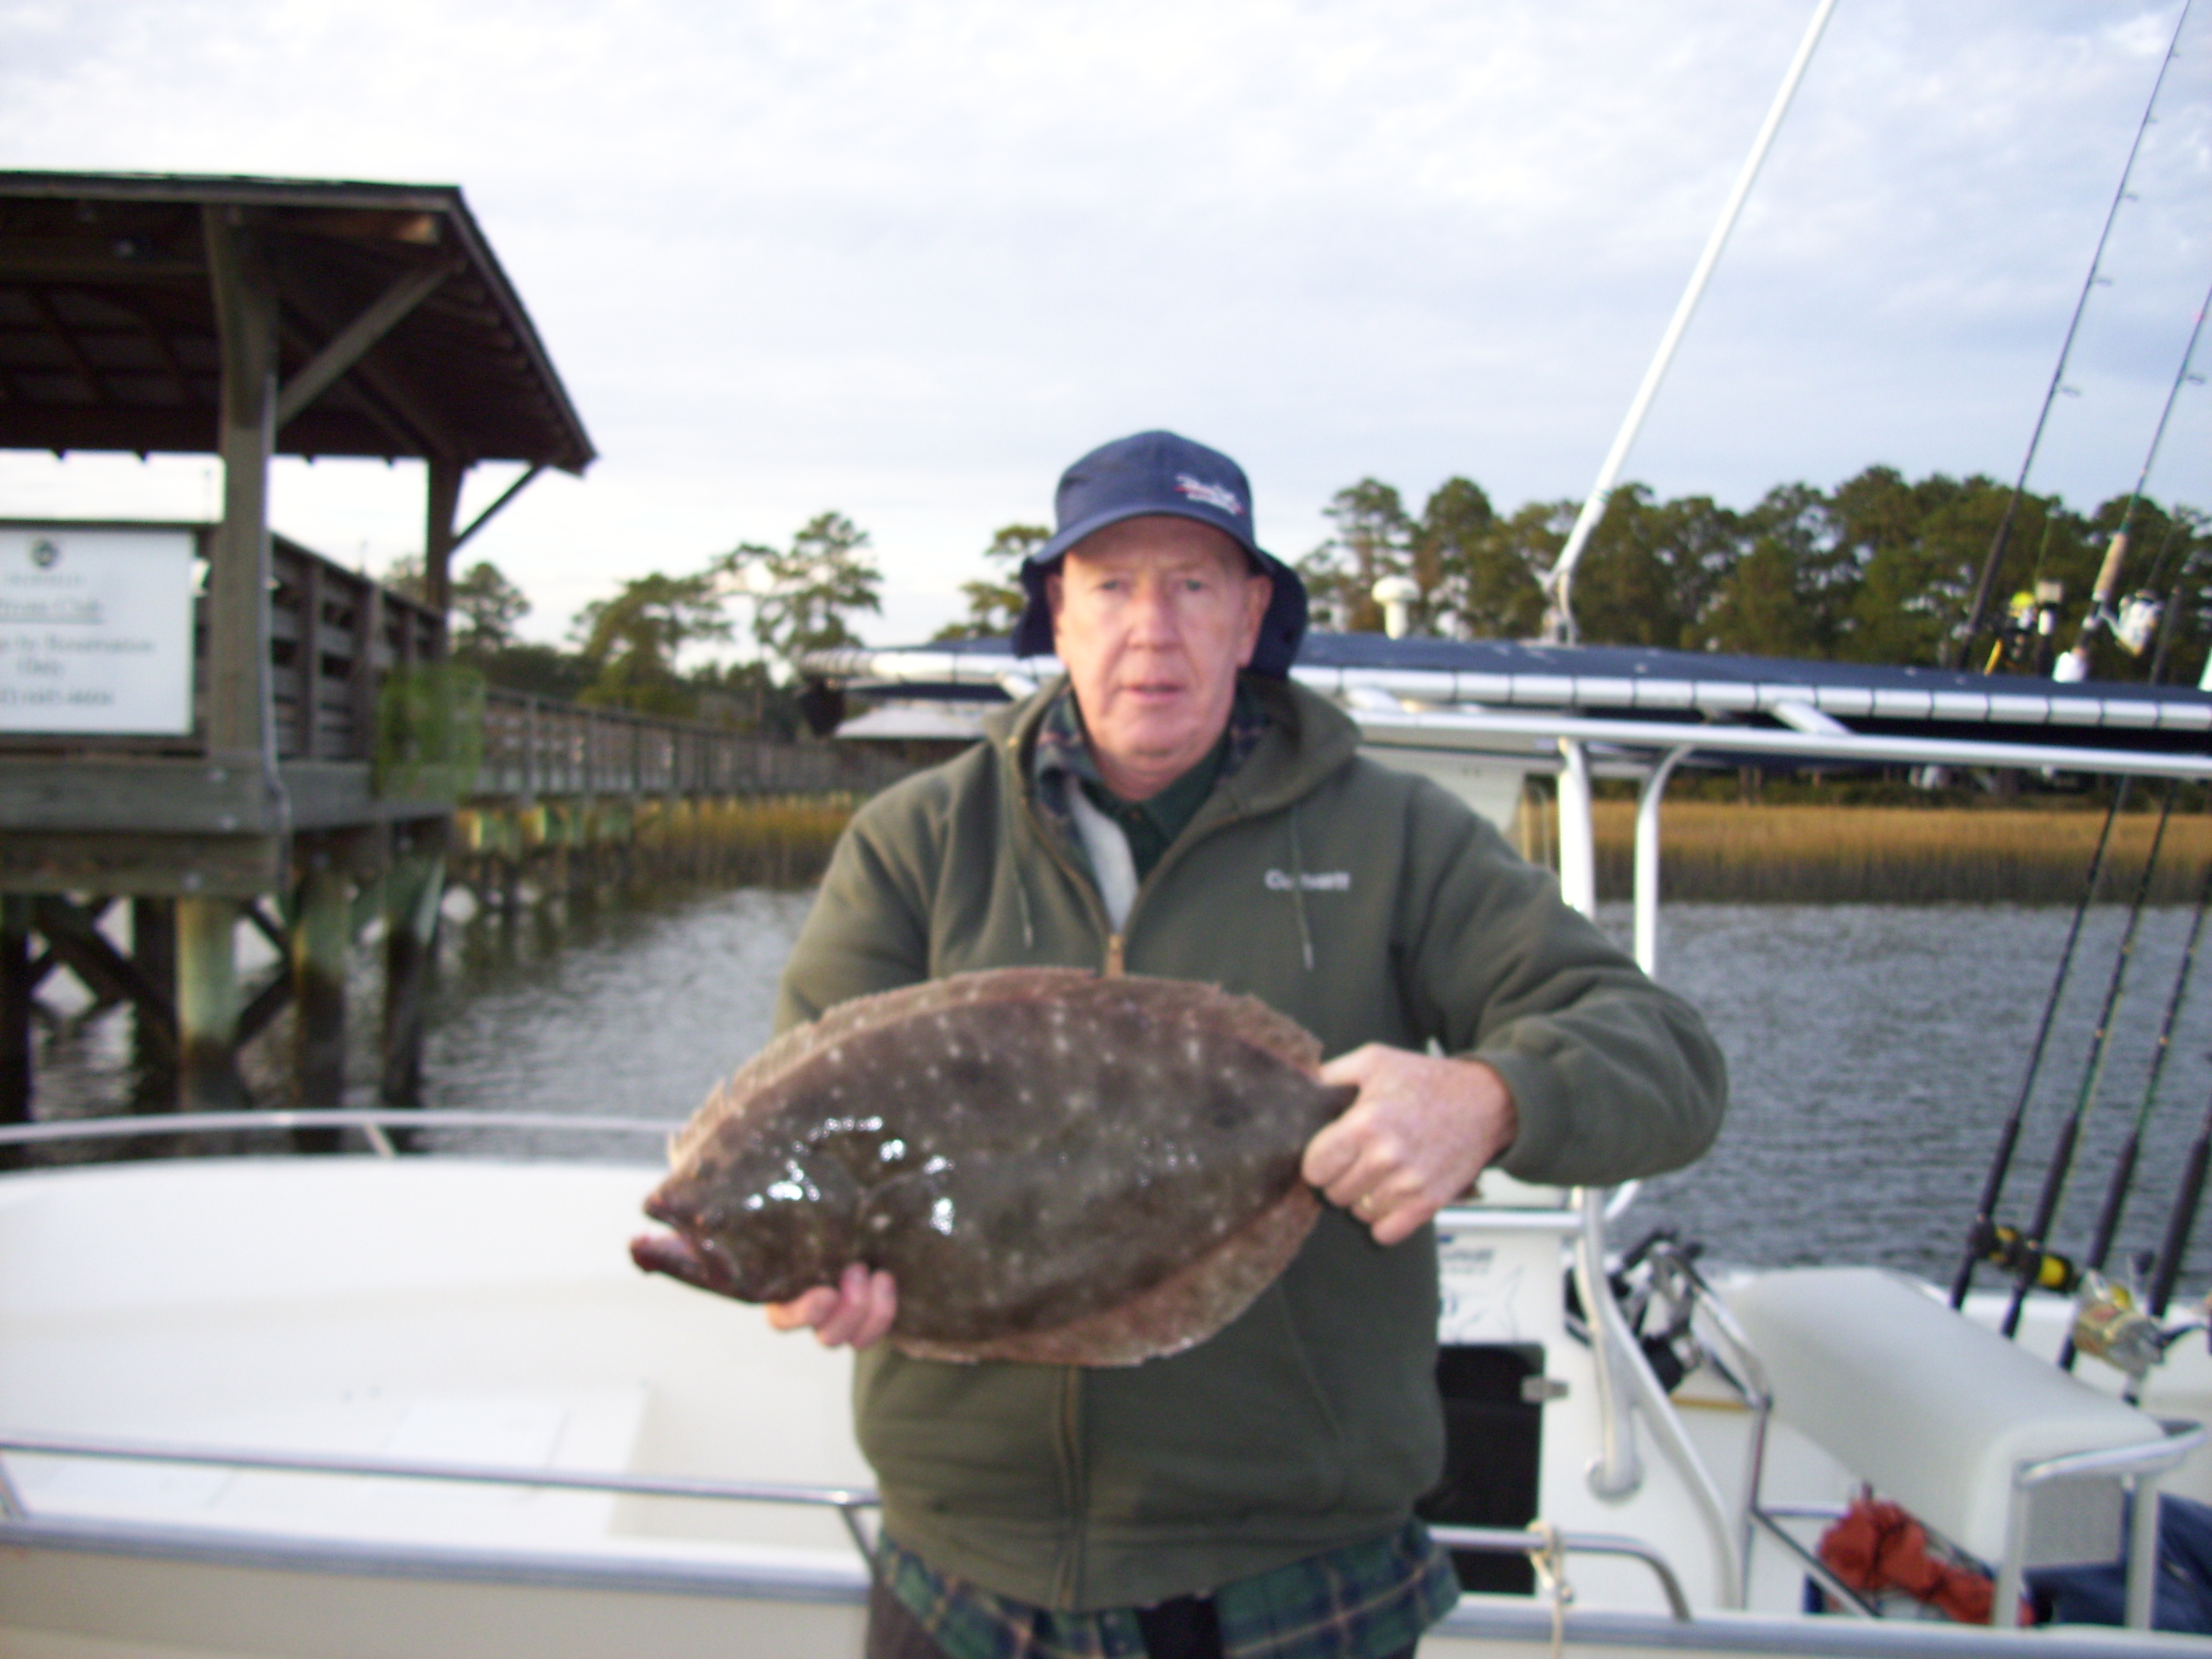 Flounder fishing charters in hilton head south carolina for Hilton head inshore fishing